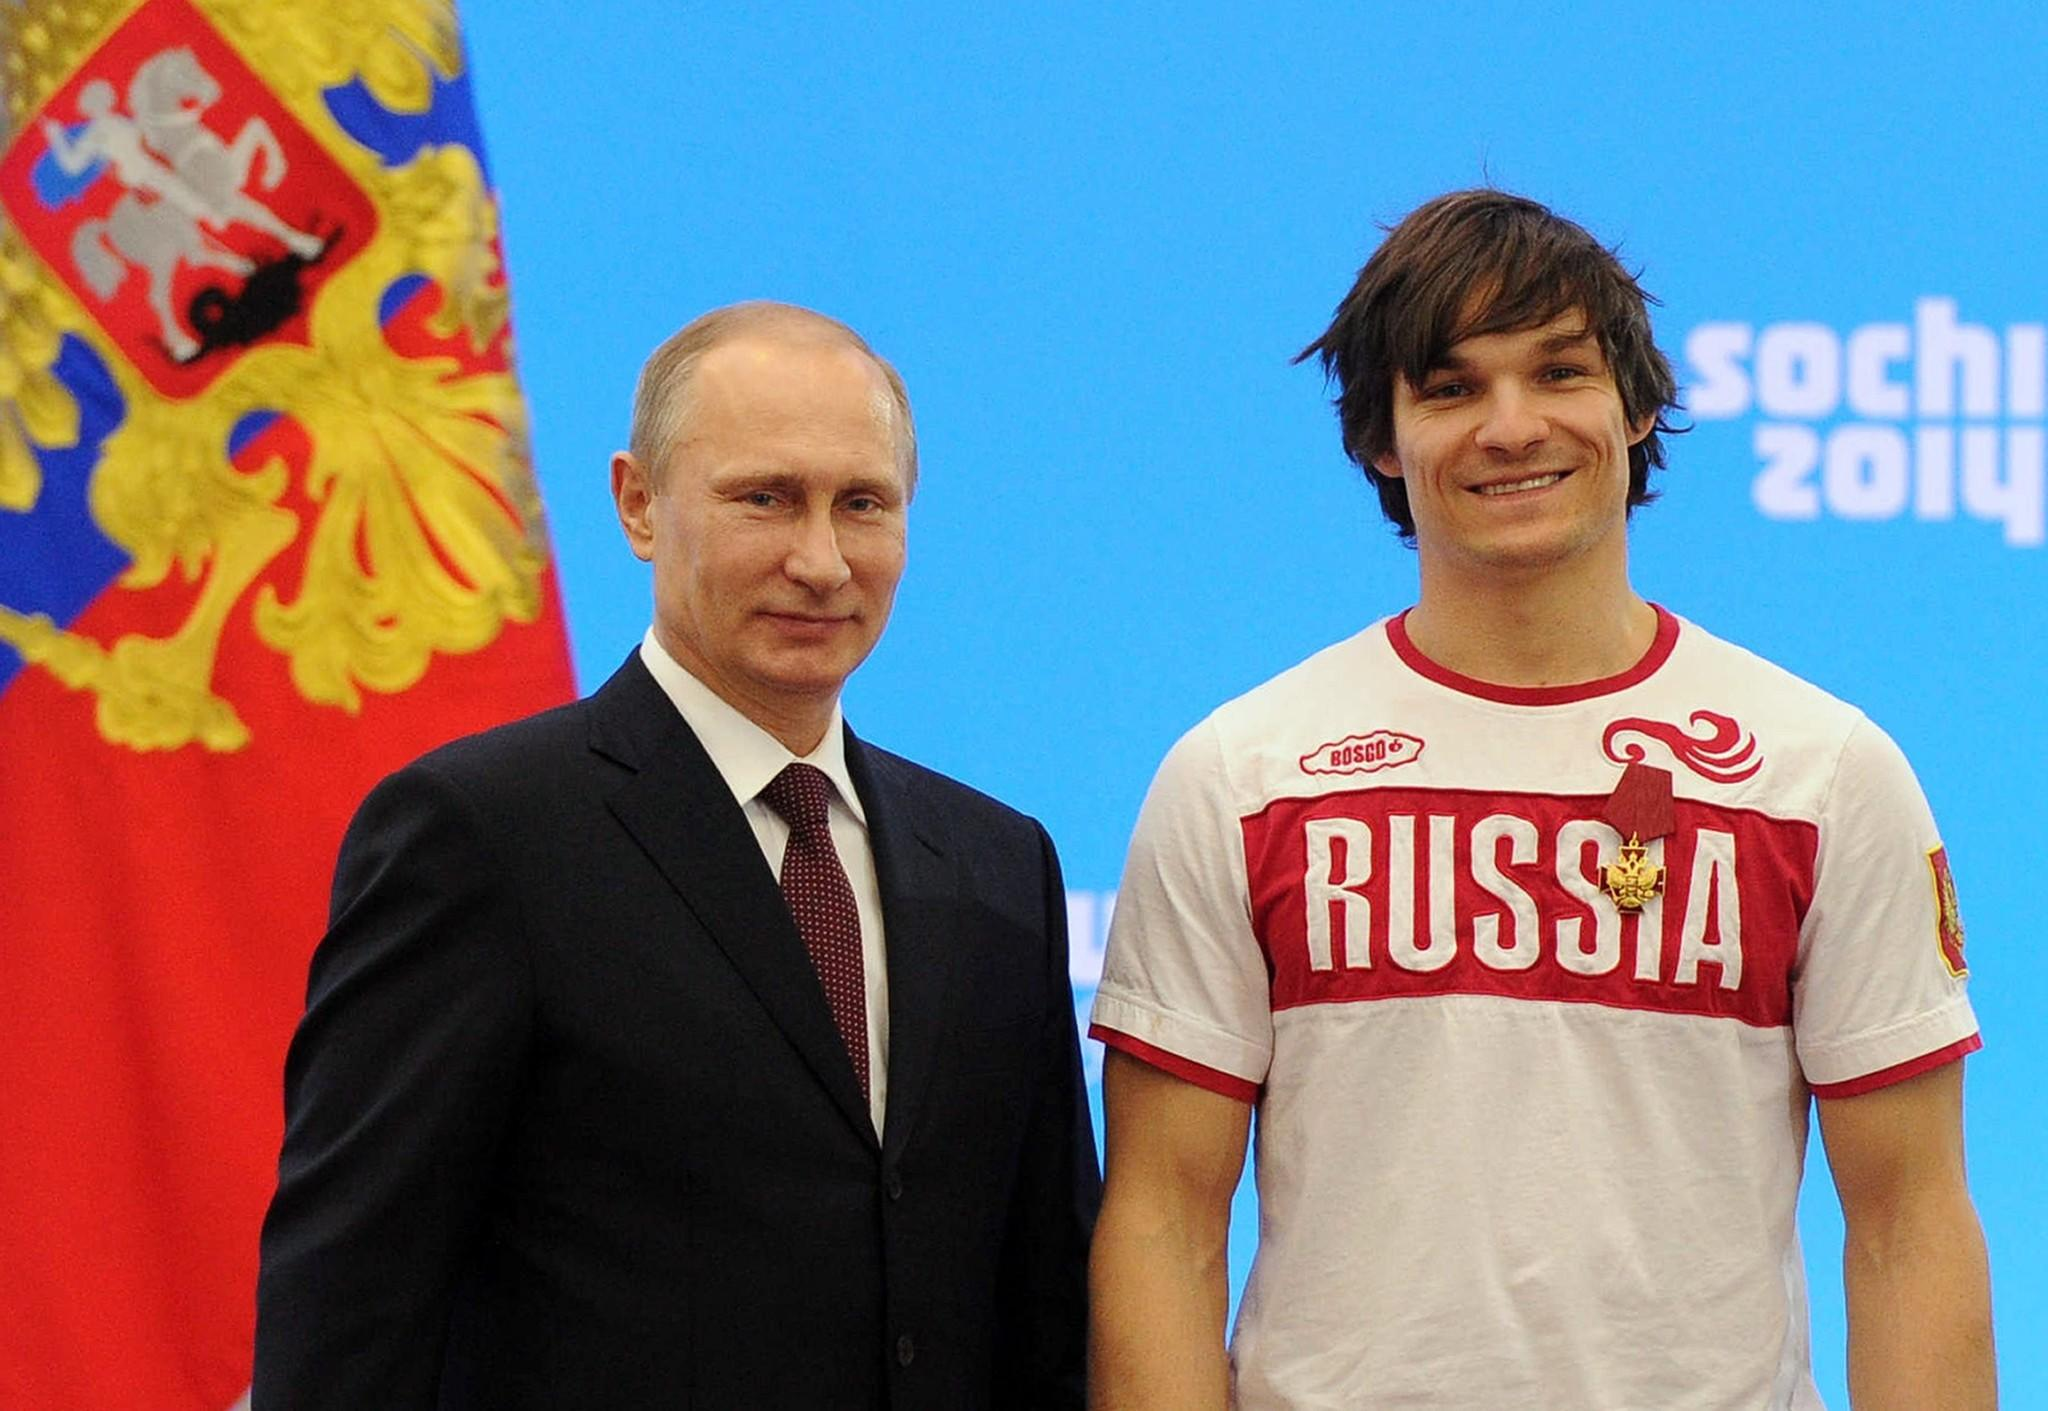 Russia's President Vladimir Putin poses for a photo with U.S.-born snowboarder Vic Wild during an awarding ceremony for Russian athletes Monday.